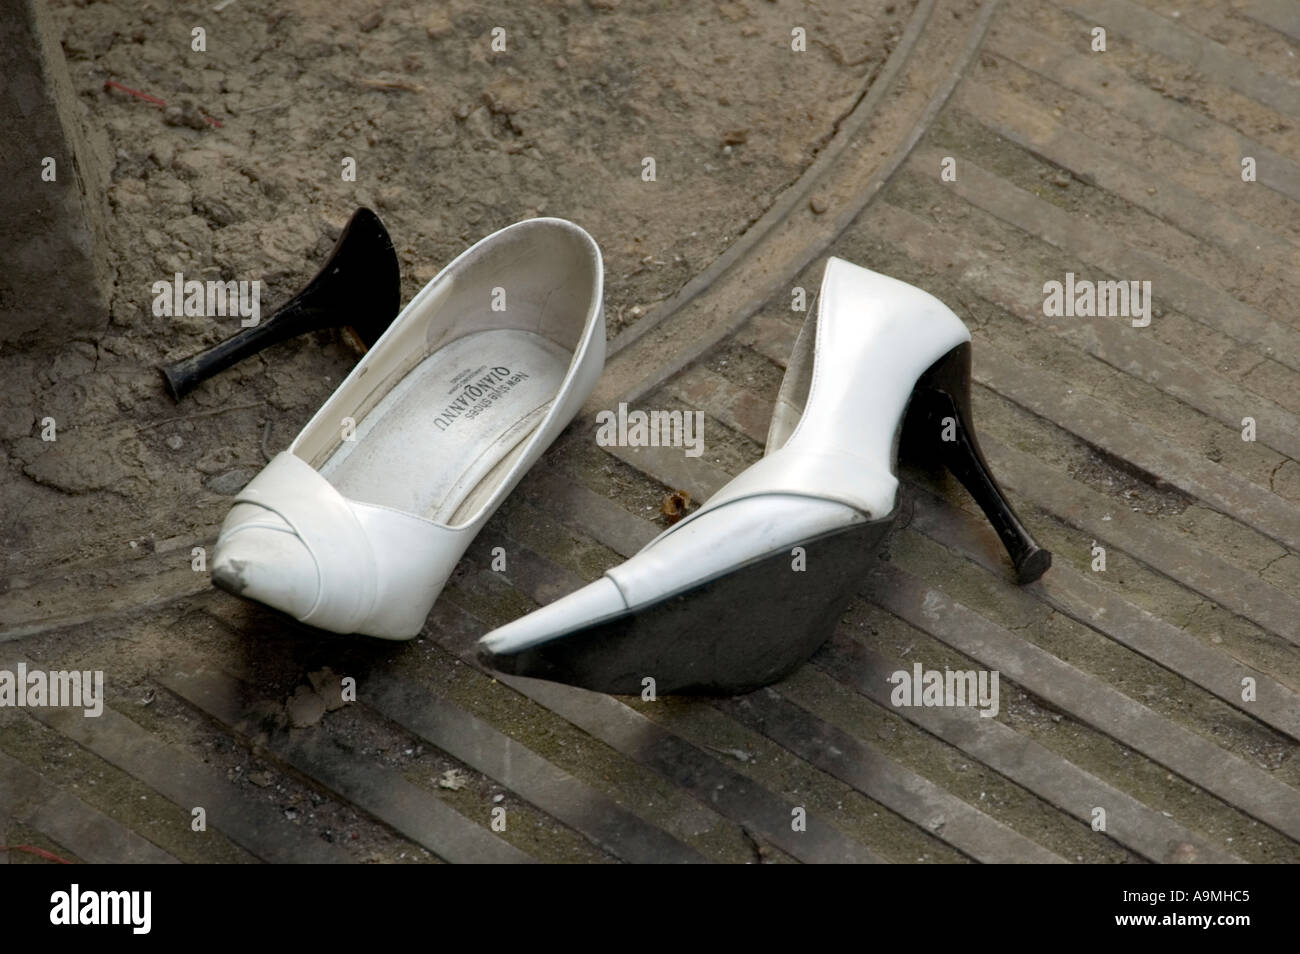 Women S Shoes Discarded